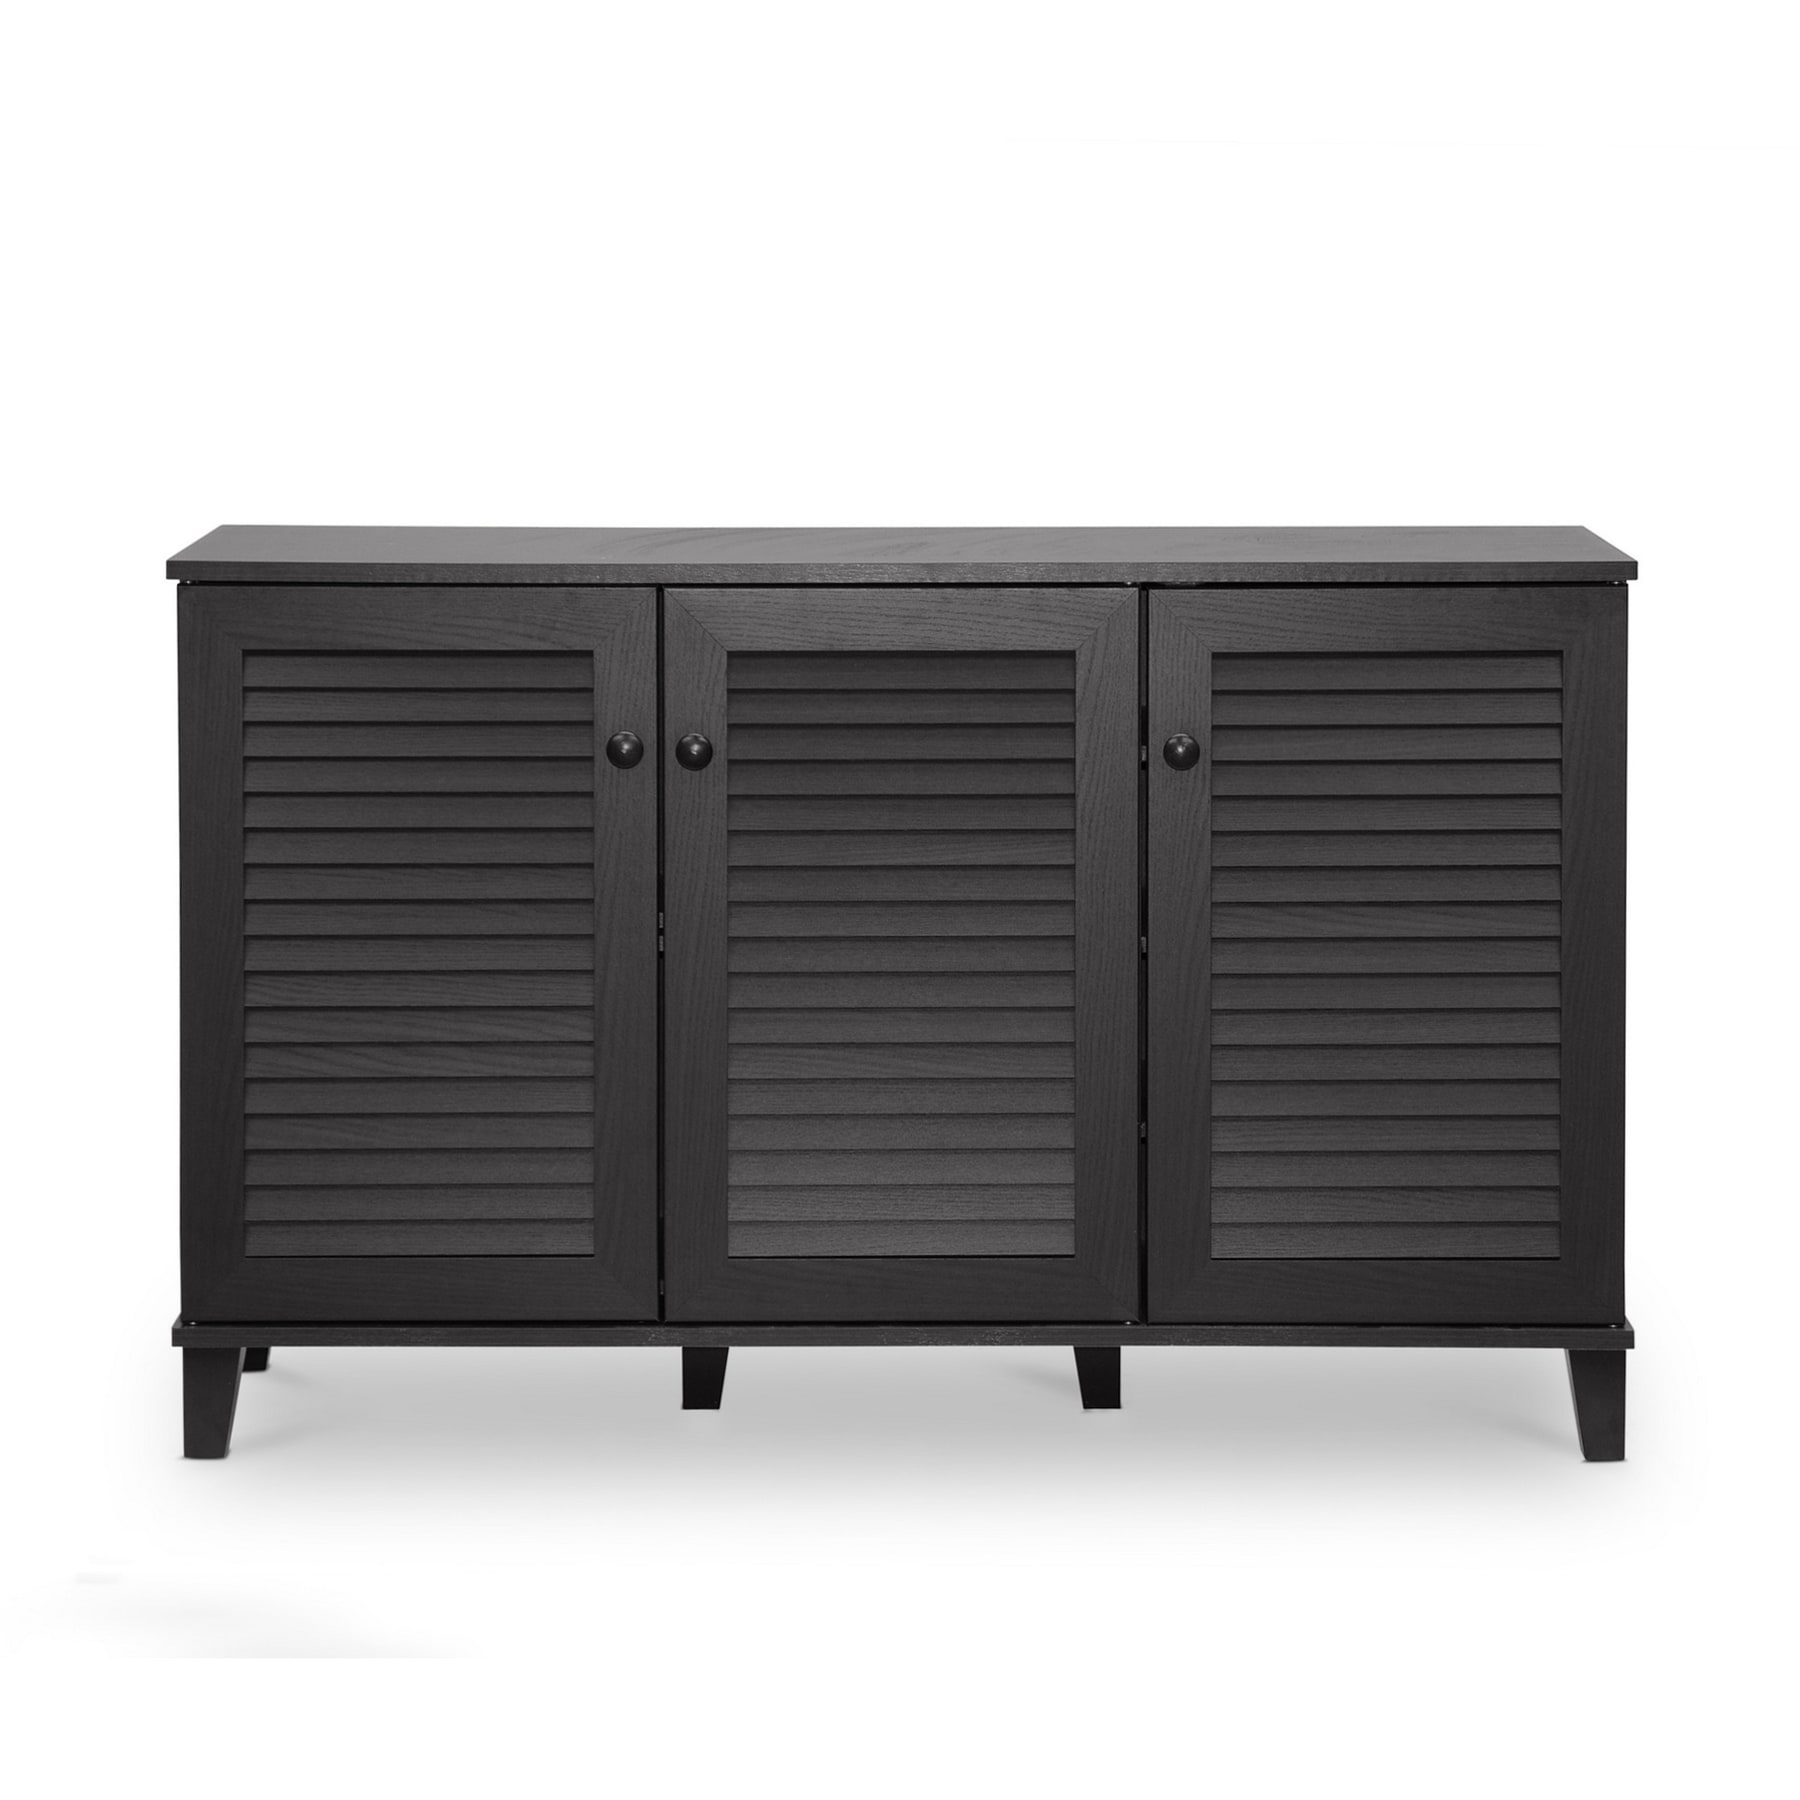 Sideboard Buffet Espresso Buy Espresso Finish Buffets Sideboards China Cabinets Online At